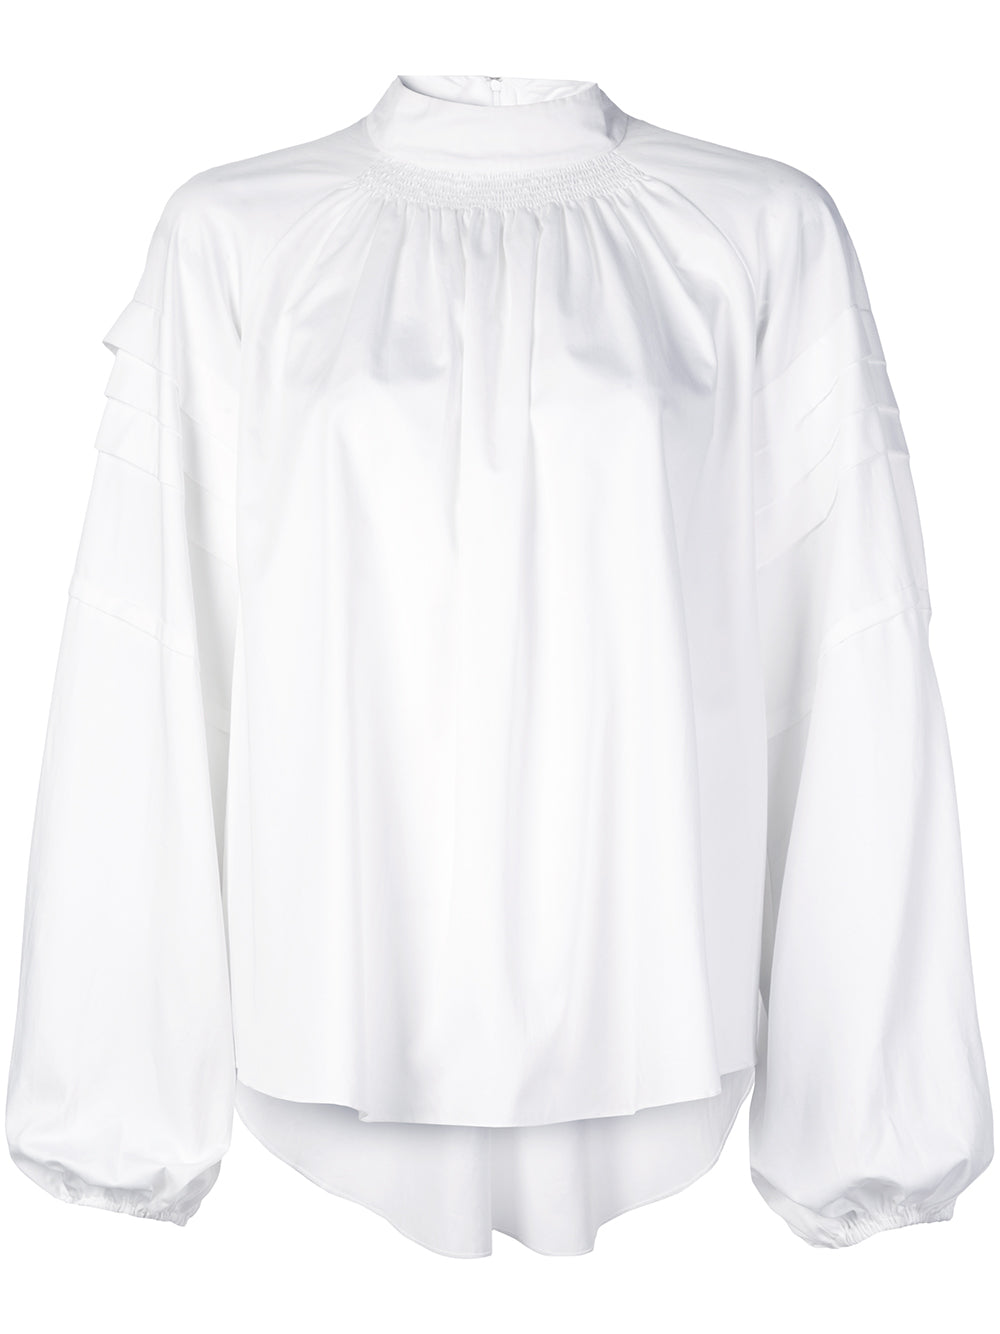 SMOCKED BLOUSE IN COTTON POPLIN